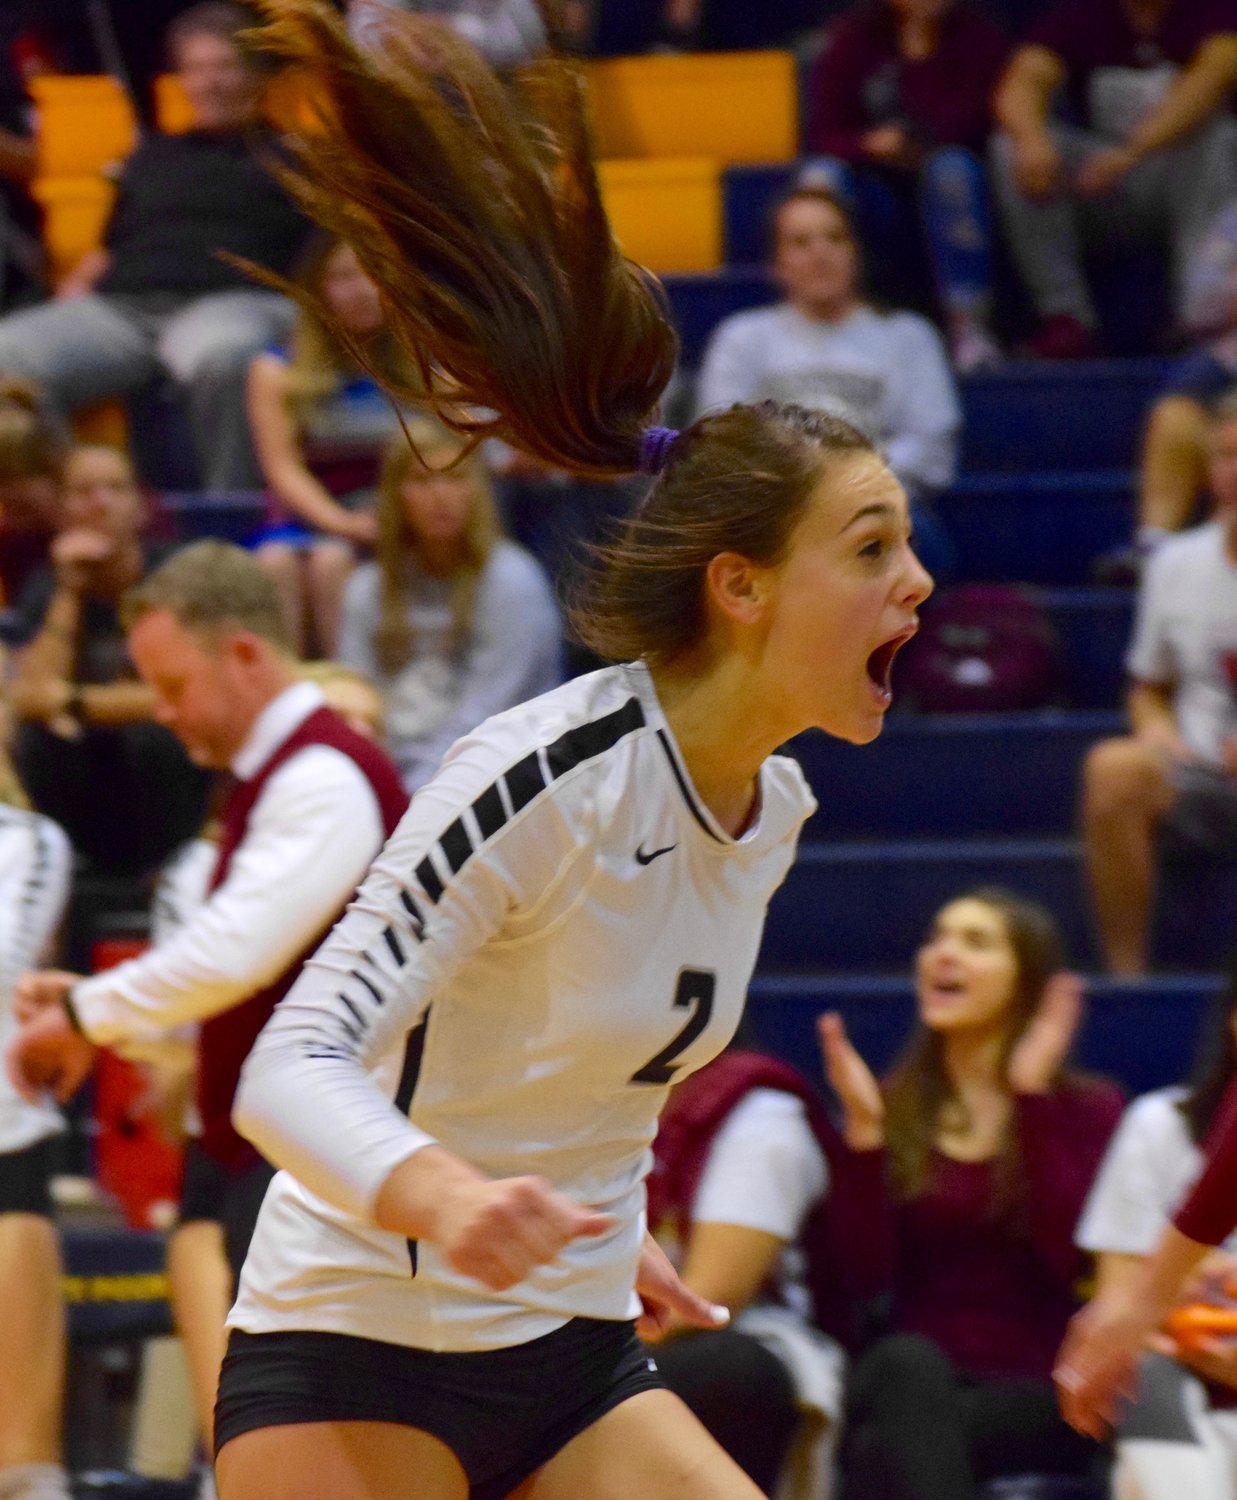 Grayson Schirpik and Rouse swept Bastrop 3-0 (25-16, 25-14, 25-23) on Tuesday night to advance to the area round of the playoffs for the third year in a row.